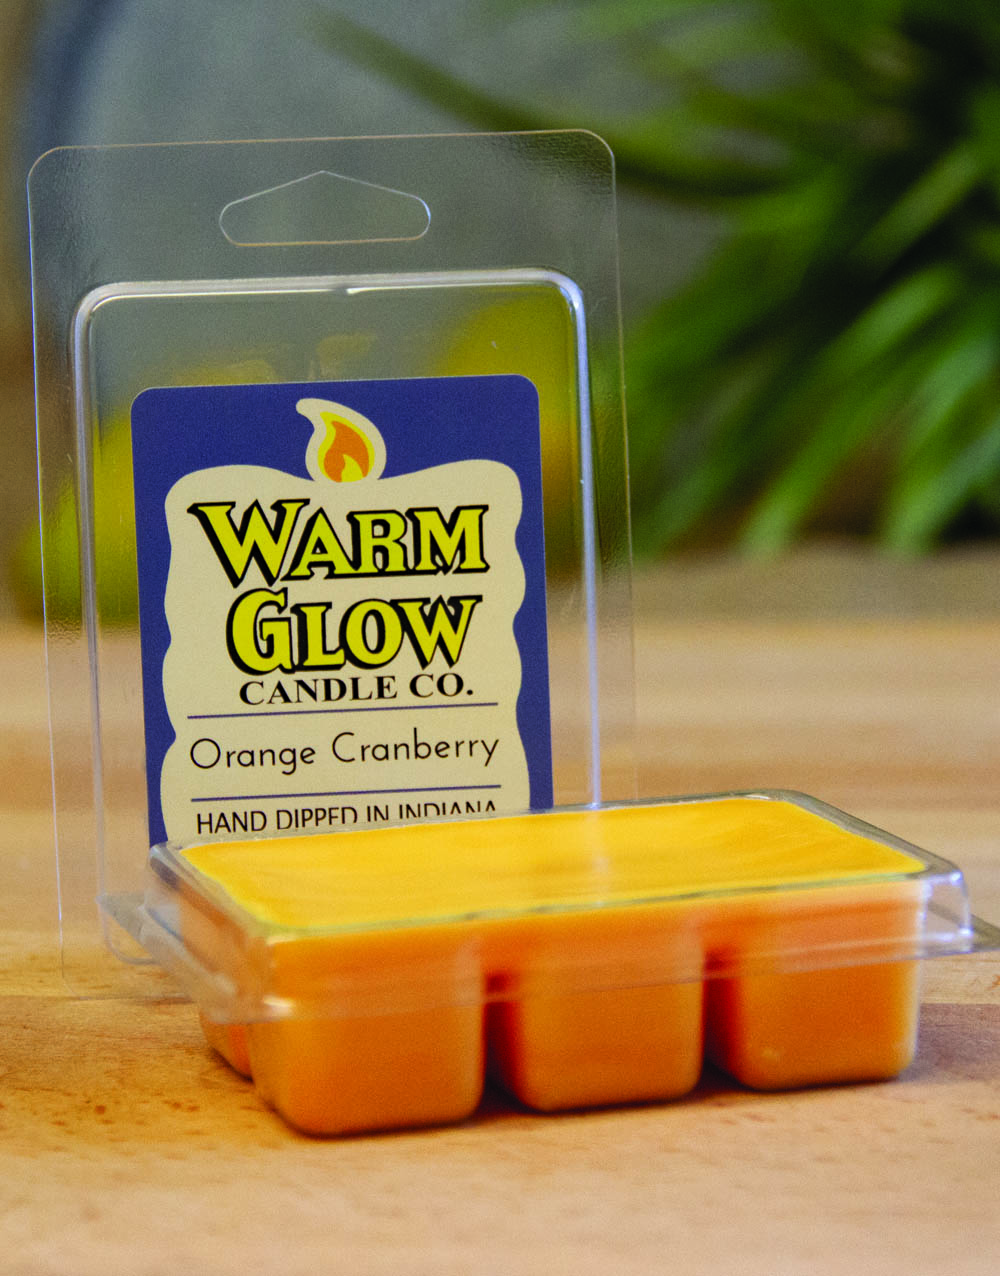 Orange-Cranberry wax melts